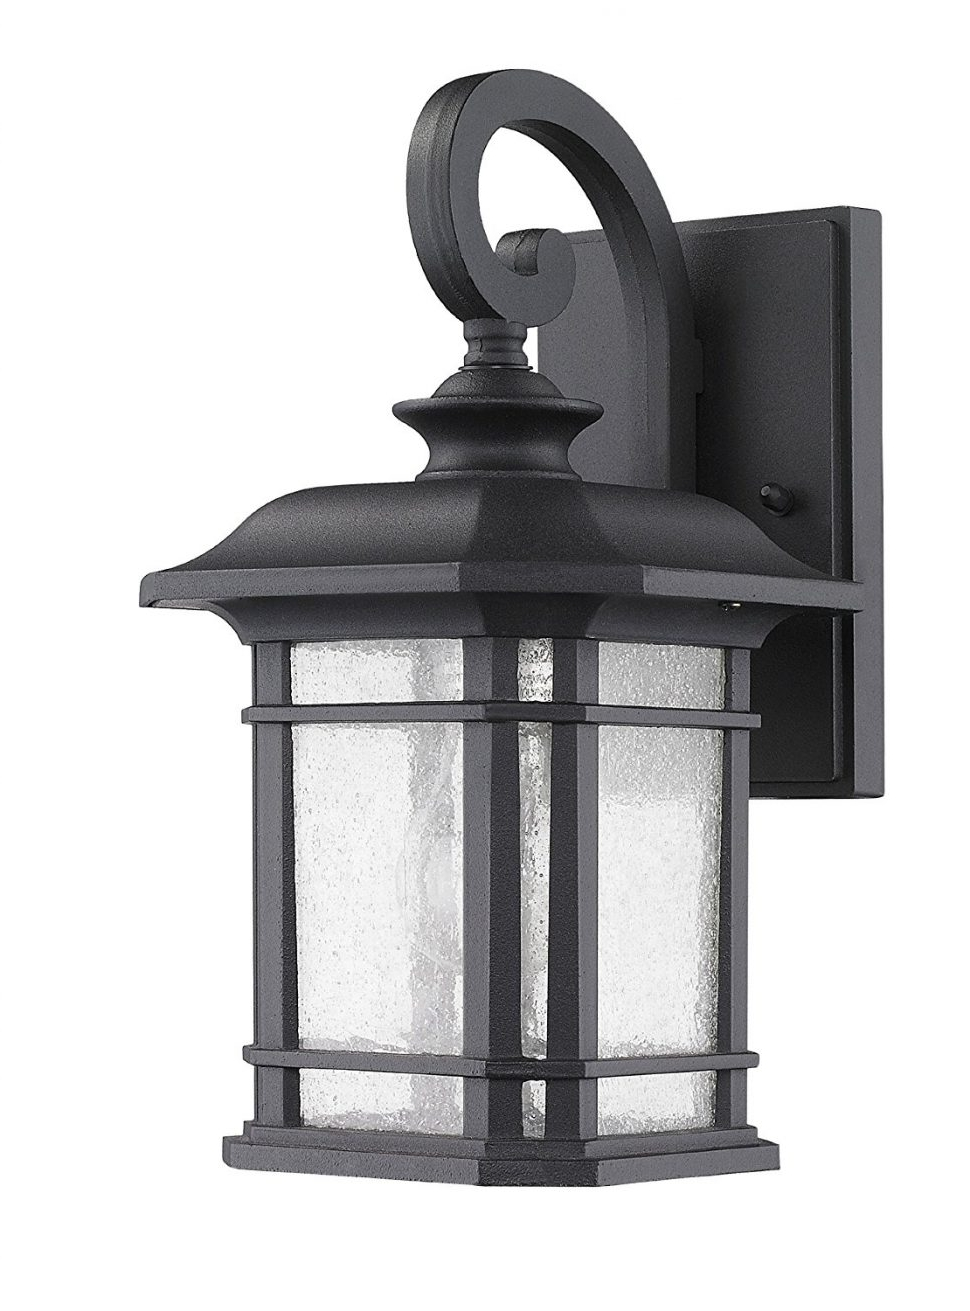 Best And Newest South Africa Outdoor Wall Lighting Throughout Furniture : Solar Wall Lights Outdoor Solar Outdoor Wall Lights (Gallery 8 of 20)